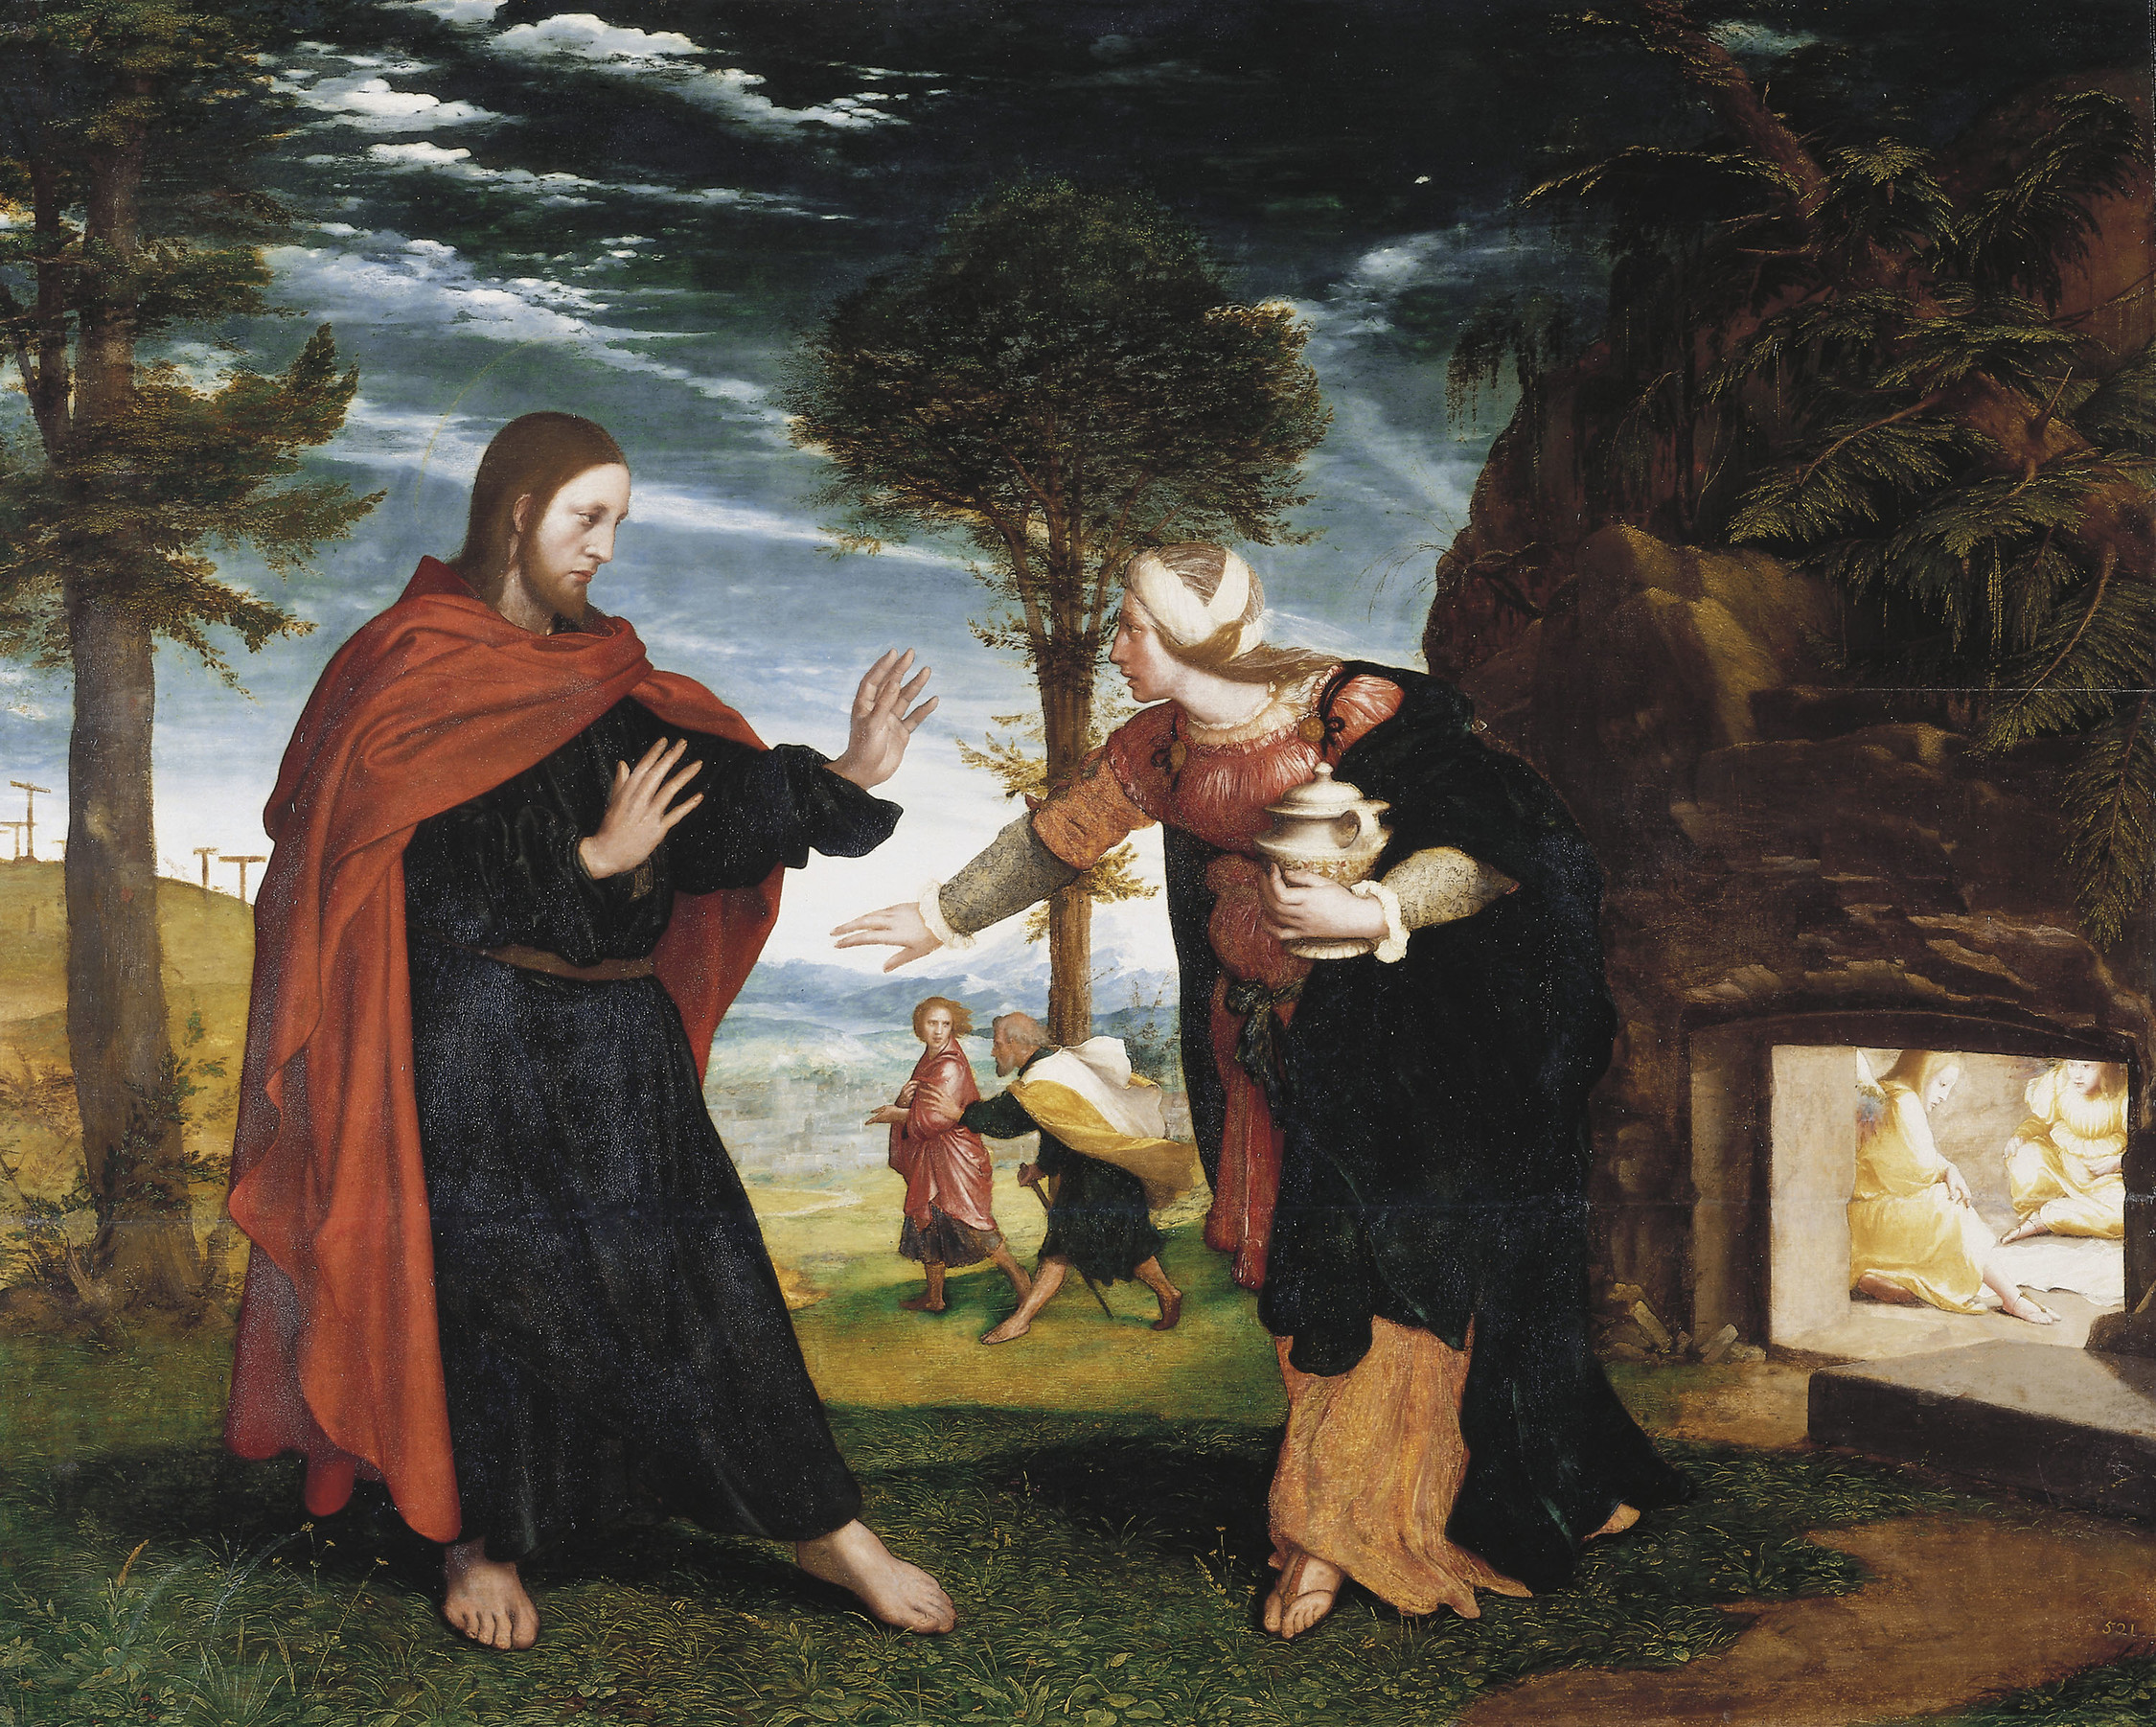 "Painting: ""Noli me tangere"" (""Do not touch me""), by Hans Holbein the Younger, ca. 1527, oil on oak, 76,7 cm x 95,8 cm, Royal Collection, Hampton Court Palace, East Molesey, United Kingdom. The scene is described in John 19:41 to 20:18; confer Song of Songs 3:1-4. The title of the work is pronounced in John 20:17a, a possible reference to Numbers 19:16. The vessel with aromatic preparations which Mary Magdalene brings to process the body of her Teacher, as approved (according to tradition) in Matthew 26:6-13, Mark 14:3-9, Luke 7:36-50 and John 12:1-8, contradicts Jesus' reaction at this point, however. The explanation is that John (19:38-40) and Matthew (28:1b) contradict Luke (23:50-24:1) and Mark (16:1): by mixing the four stories, the picture is contradictory. In academic circles this scene is known as ""The problem of the empty tomb"", a term that arises from the fact that Mark, theoretically the first synoptic gospel written and foundation for the others, originally ended at verse 8 of chapter 16 (as witnessed by the Codex Sinaiticus, the Codex Vaticanus, the Syriac Sinaitic palimpsest, much of the Armenian Manuscripts, the Canons of Eusebius, etc.). The next verse, the number 9, which puts forward for the first time the issue of an apparition of Jesus of Nazareth to Mary Magdalene (without even specifying where or under what circumstances), as well as the subsequent verses, with their multiple and conflicting historical variants, were added later by other scribes. One explanation for this apocryphal action was ""vox populi"" among the Jews of the time, as evidenced in Matthew 28:11-15. If so, the psychological suffering of Mary, called Magdalene, whom Jesus healed of ""seven devils"", would have had no end. Credit: Hans Holbein the Younger, via The Royal Collection Trust, available at http://www.royalcollection.org.uk. Photography Copyright © 2013 Her Majesty Queen Elizabeth II. All rights reserved. This image file is hosted in computer servers of The Royal Collection Trust, http://www.royalcollection.org.uk. Reproduction prohibited. Special thanks to Daniel Bell for this courtesy."